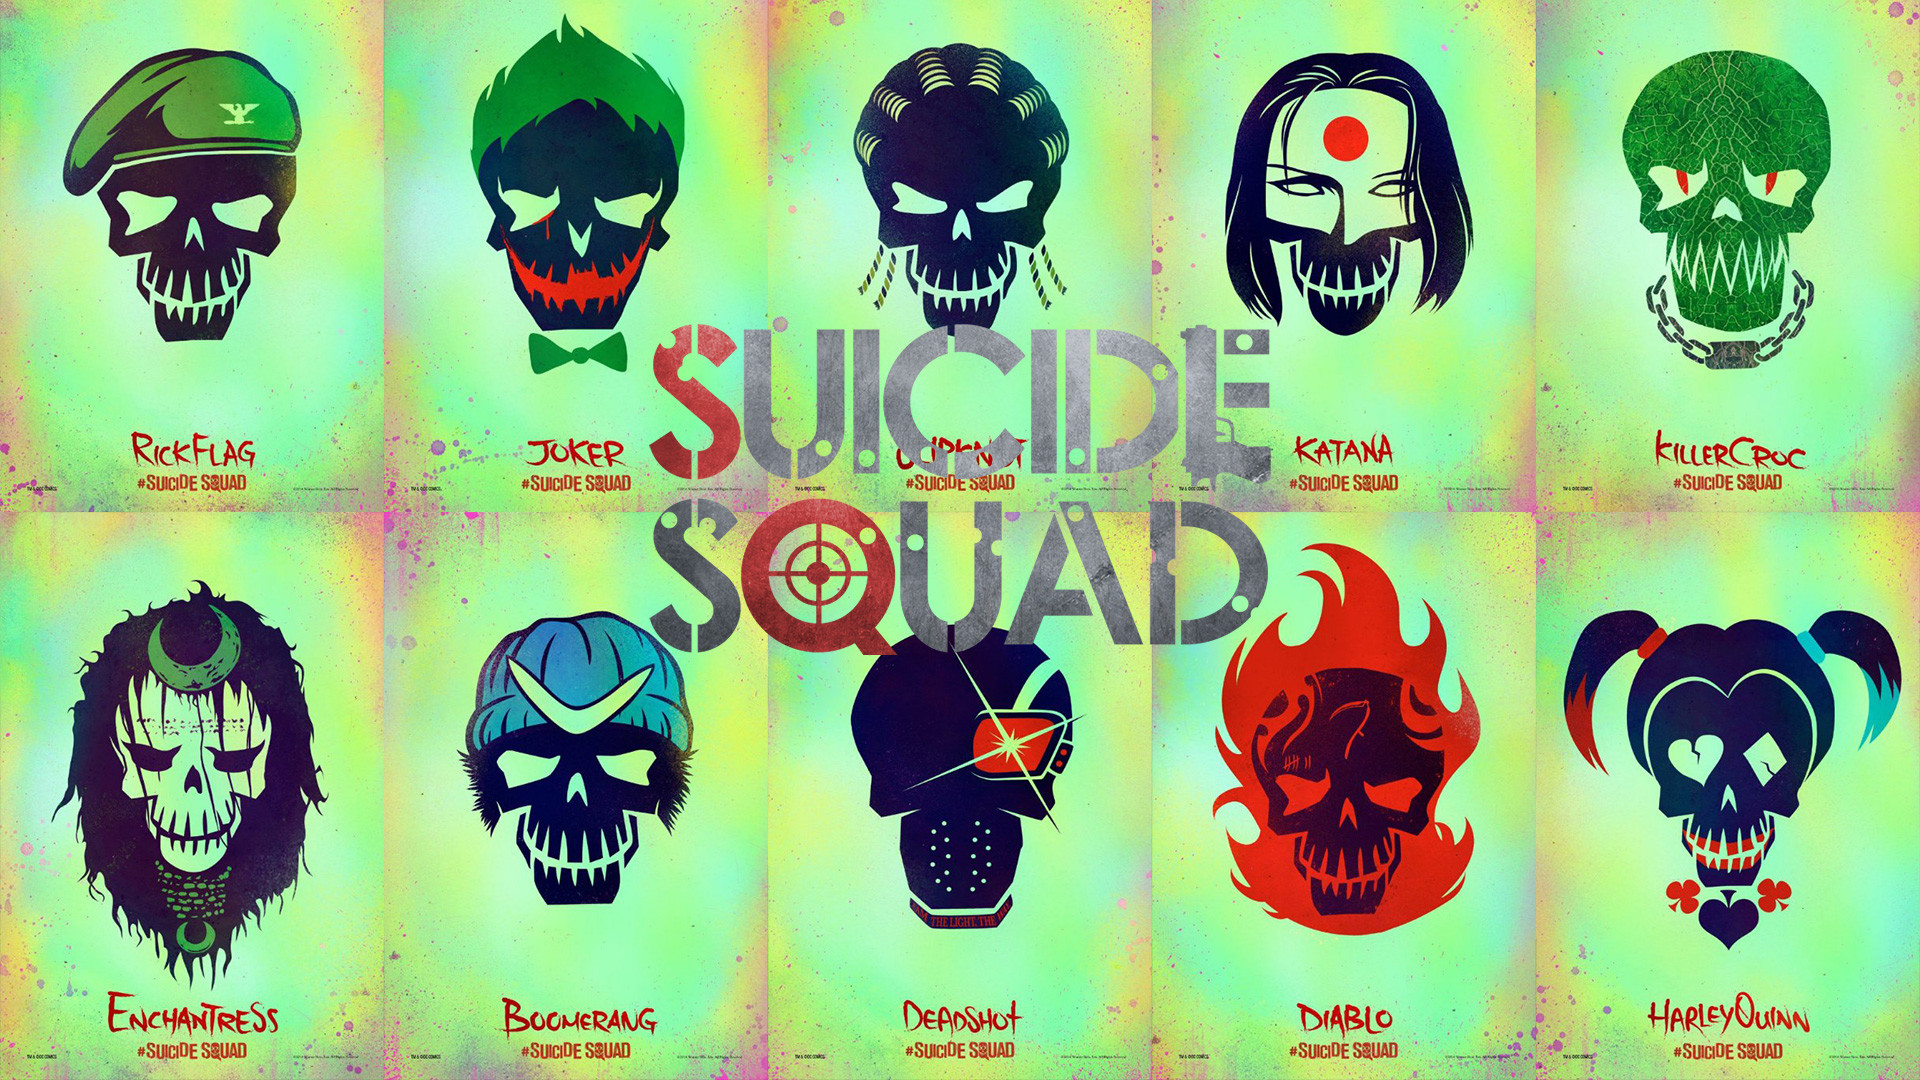 Suicide Squad movie wallpaper hd Free HD Wallpapers, Images, Stock .